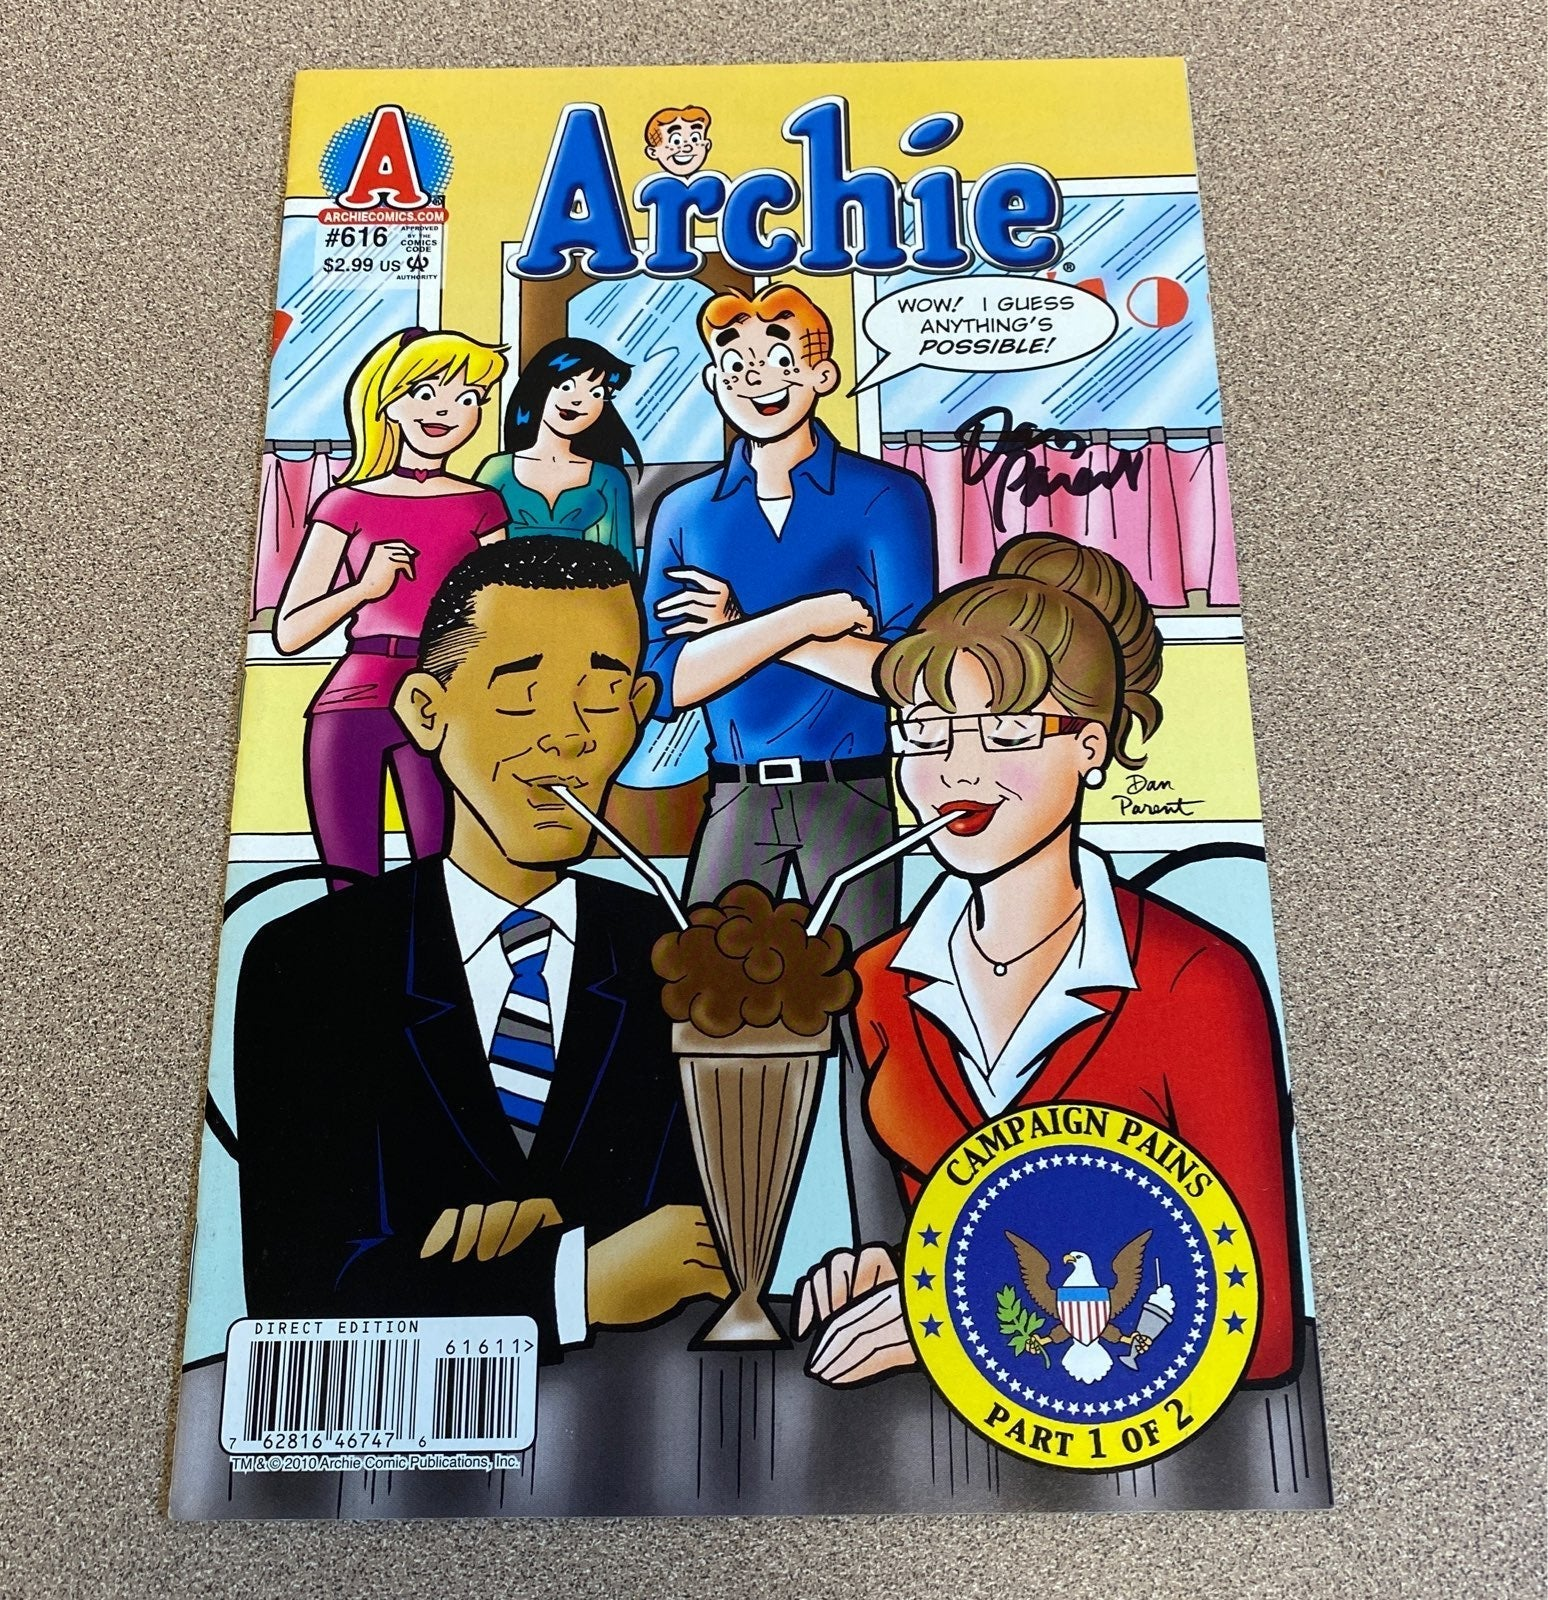 Archie 616 signed